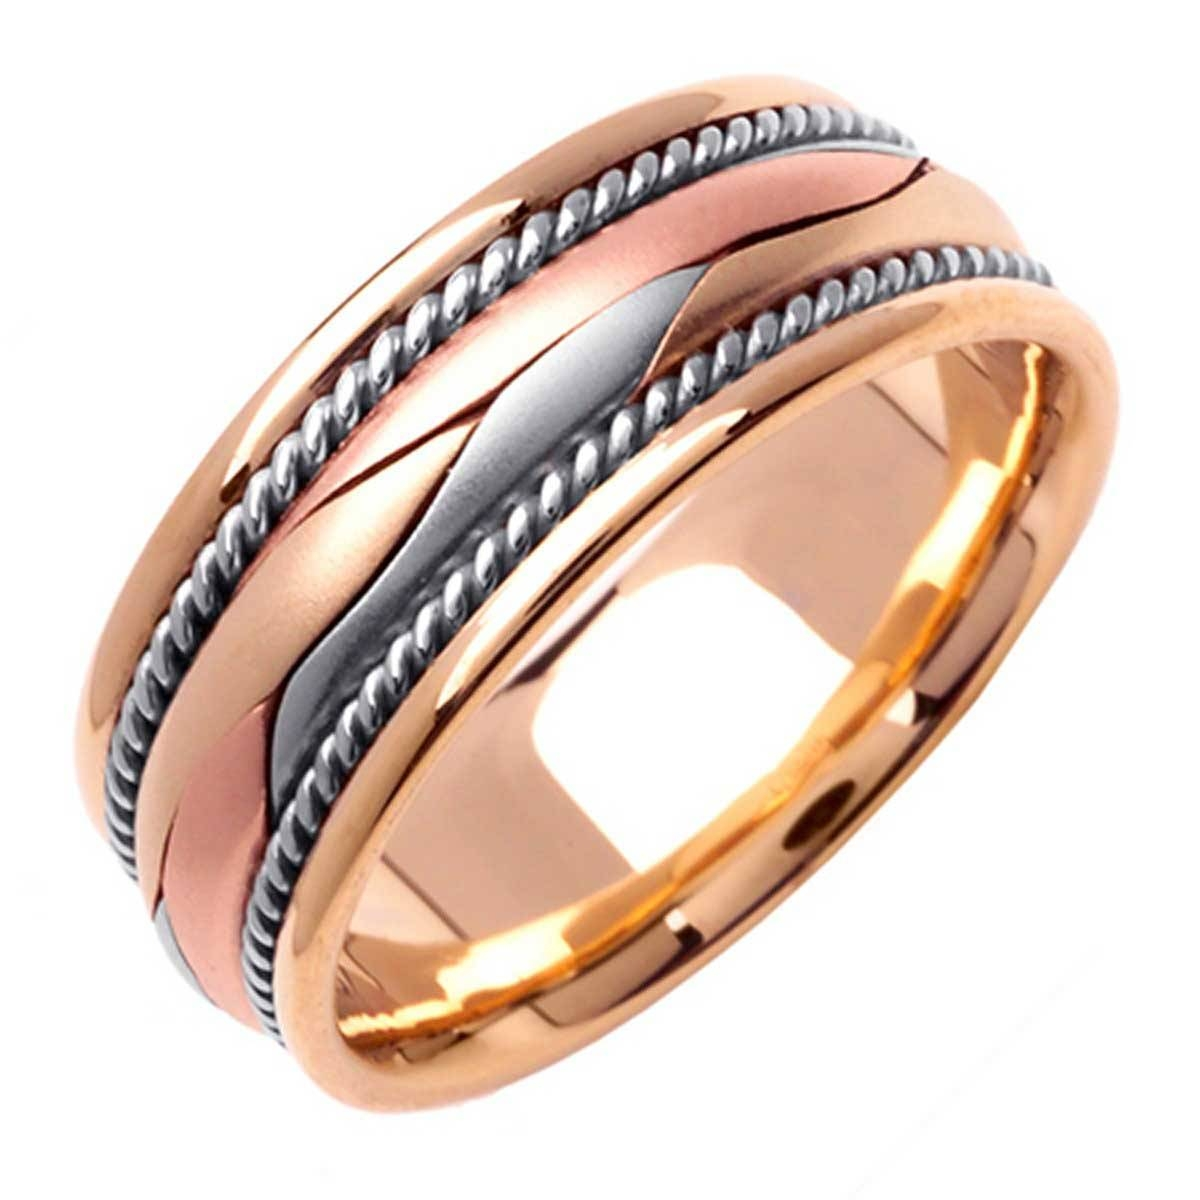 14K Tri Color Gold Rope Braid Band 8Mm  3003002 – Shop At Wedding Throughout Three Color Braided Wedding Bands (View 11 of 15)